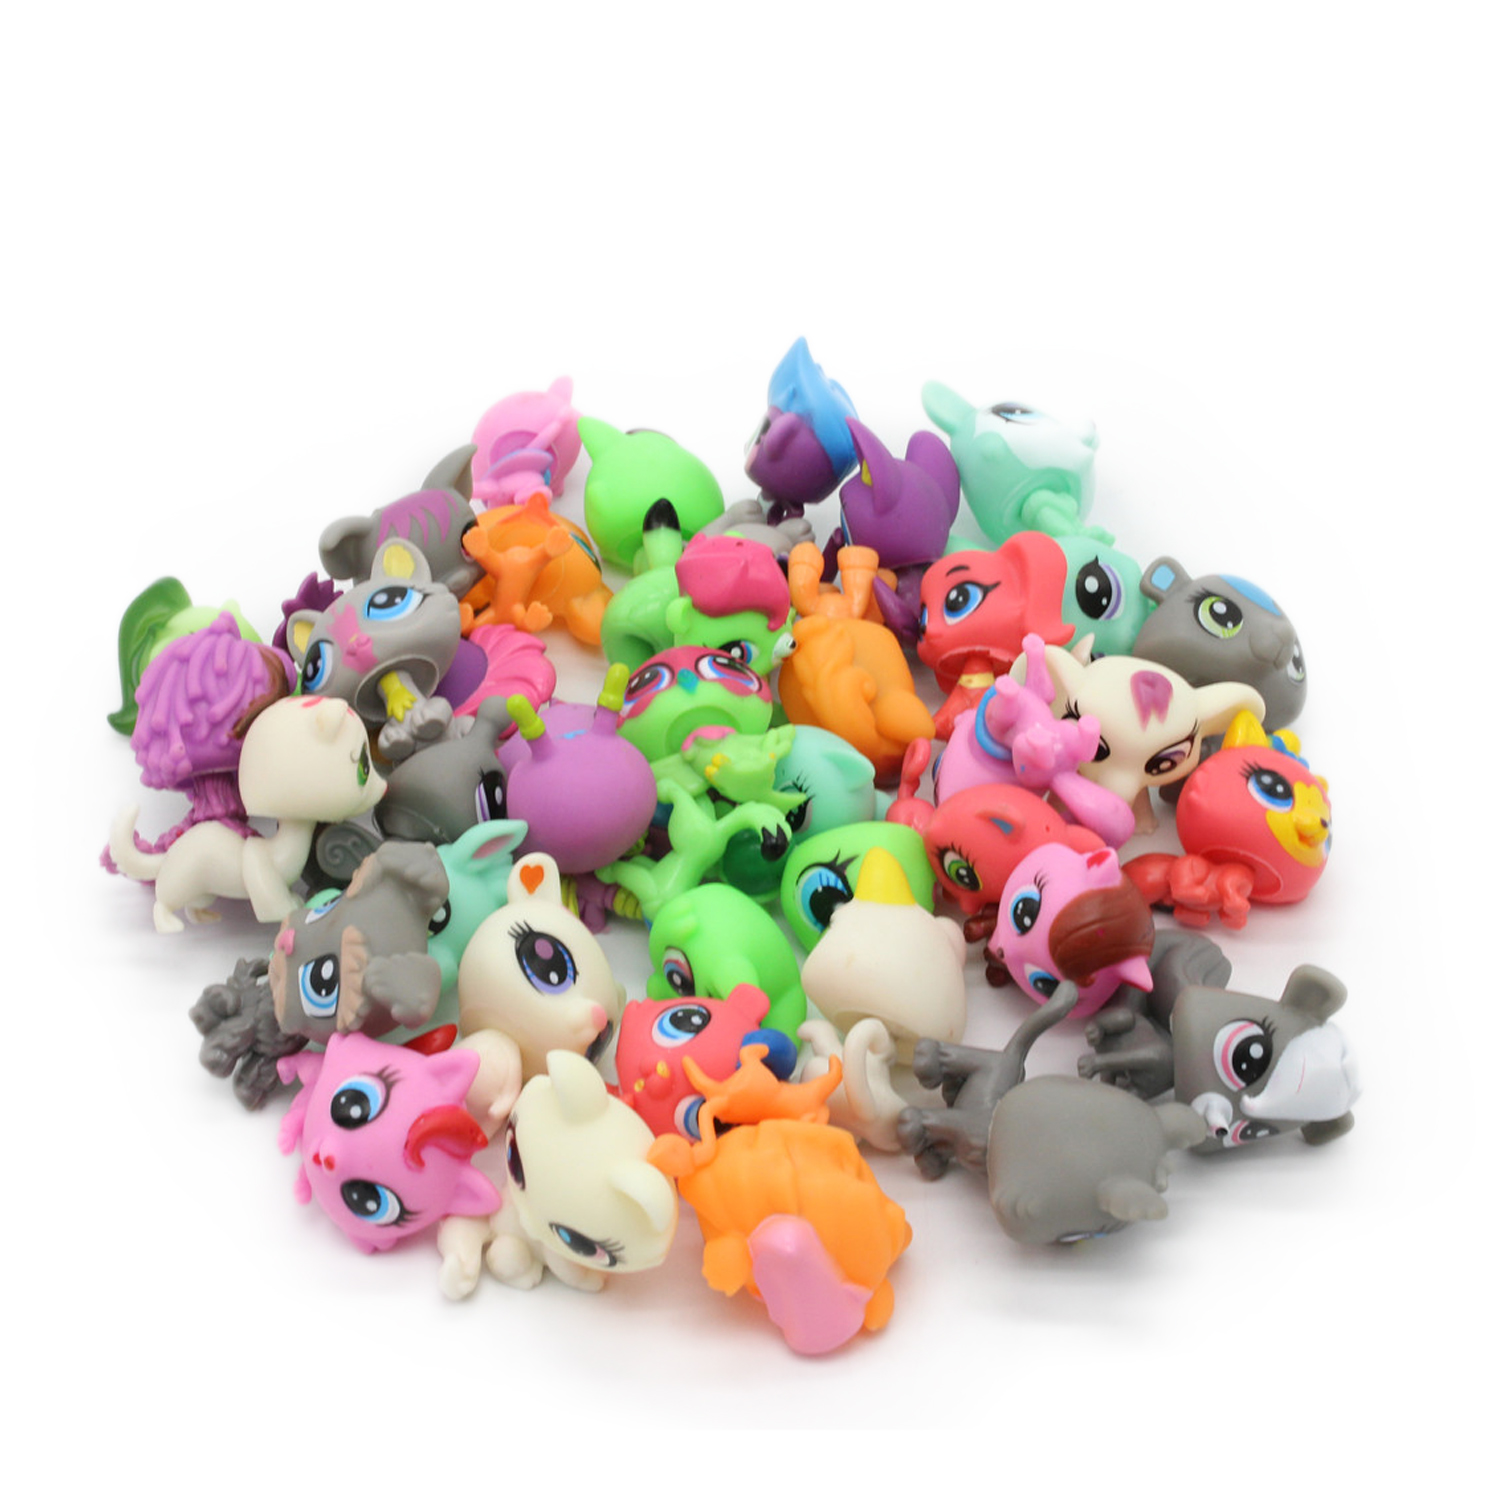 LPS New Style lps Toy bag 32Pcs/bag Little Pet Shop Mini Toy Animal Cat patrulla canina dog Action Figures Kids toys push along walking toy wooden animal patterns funny kids children baby walker toys duckling dog cat development eduacational toy